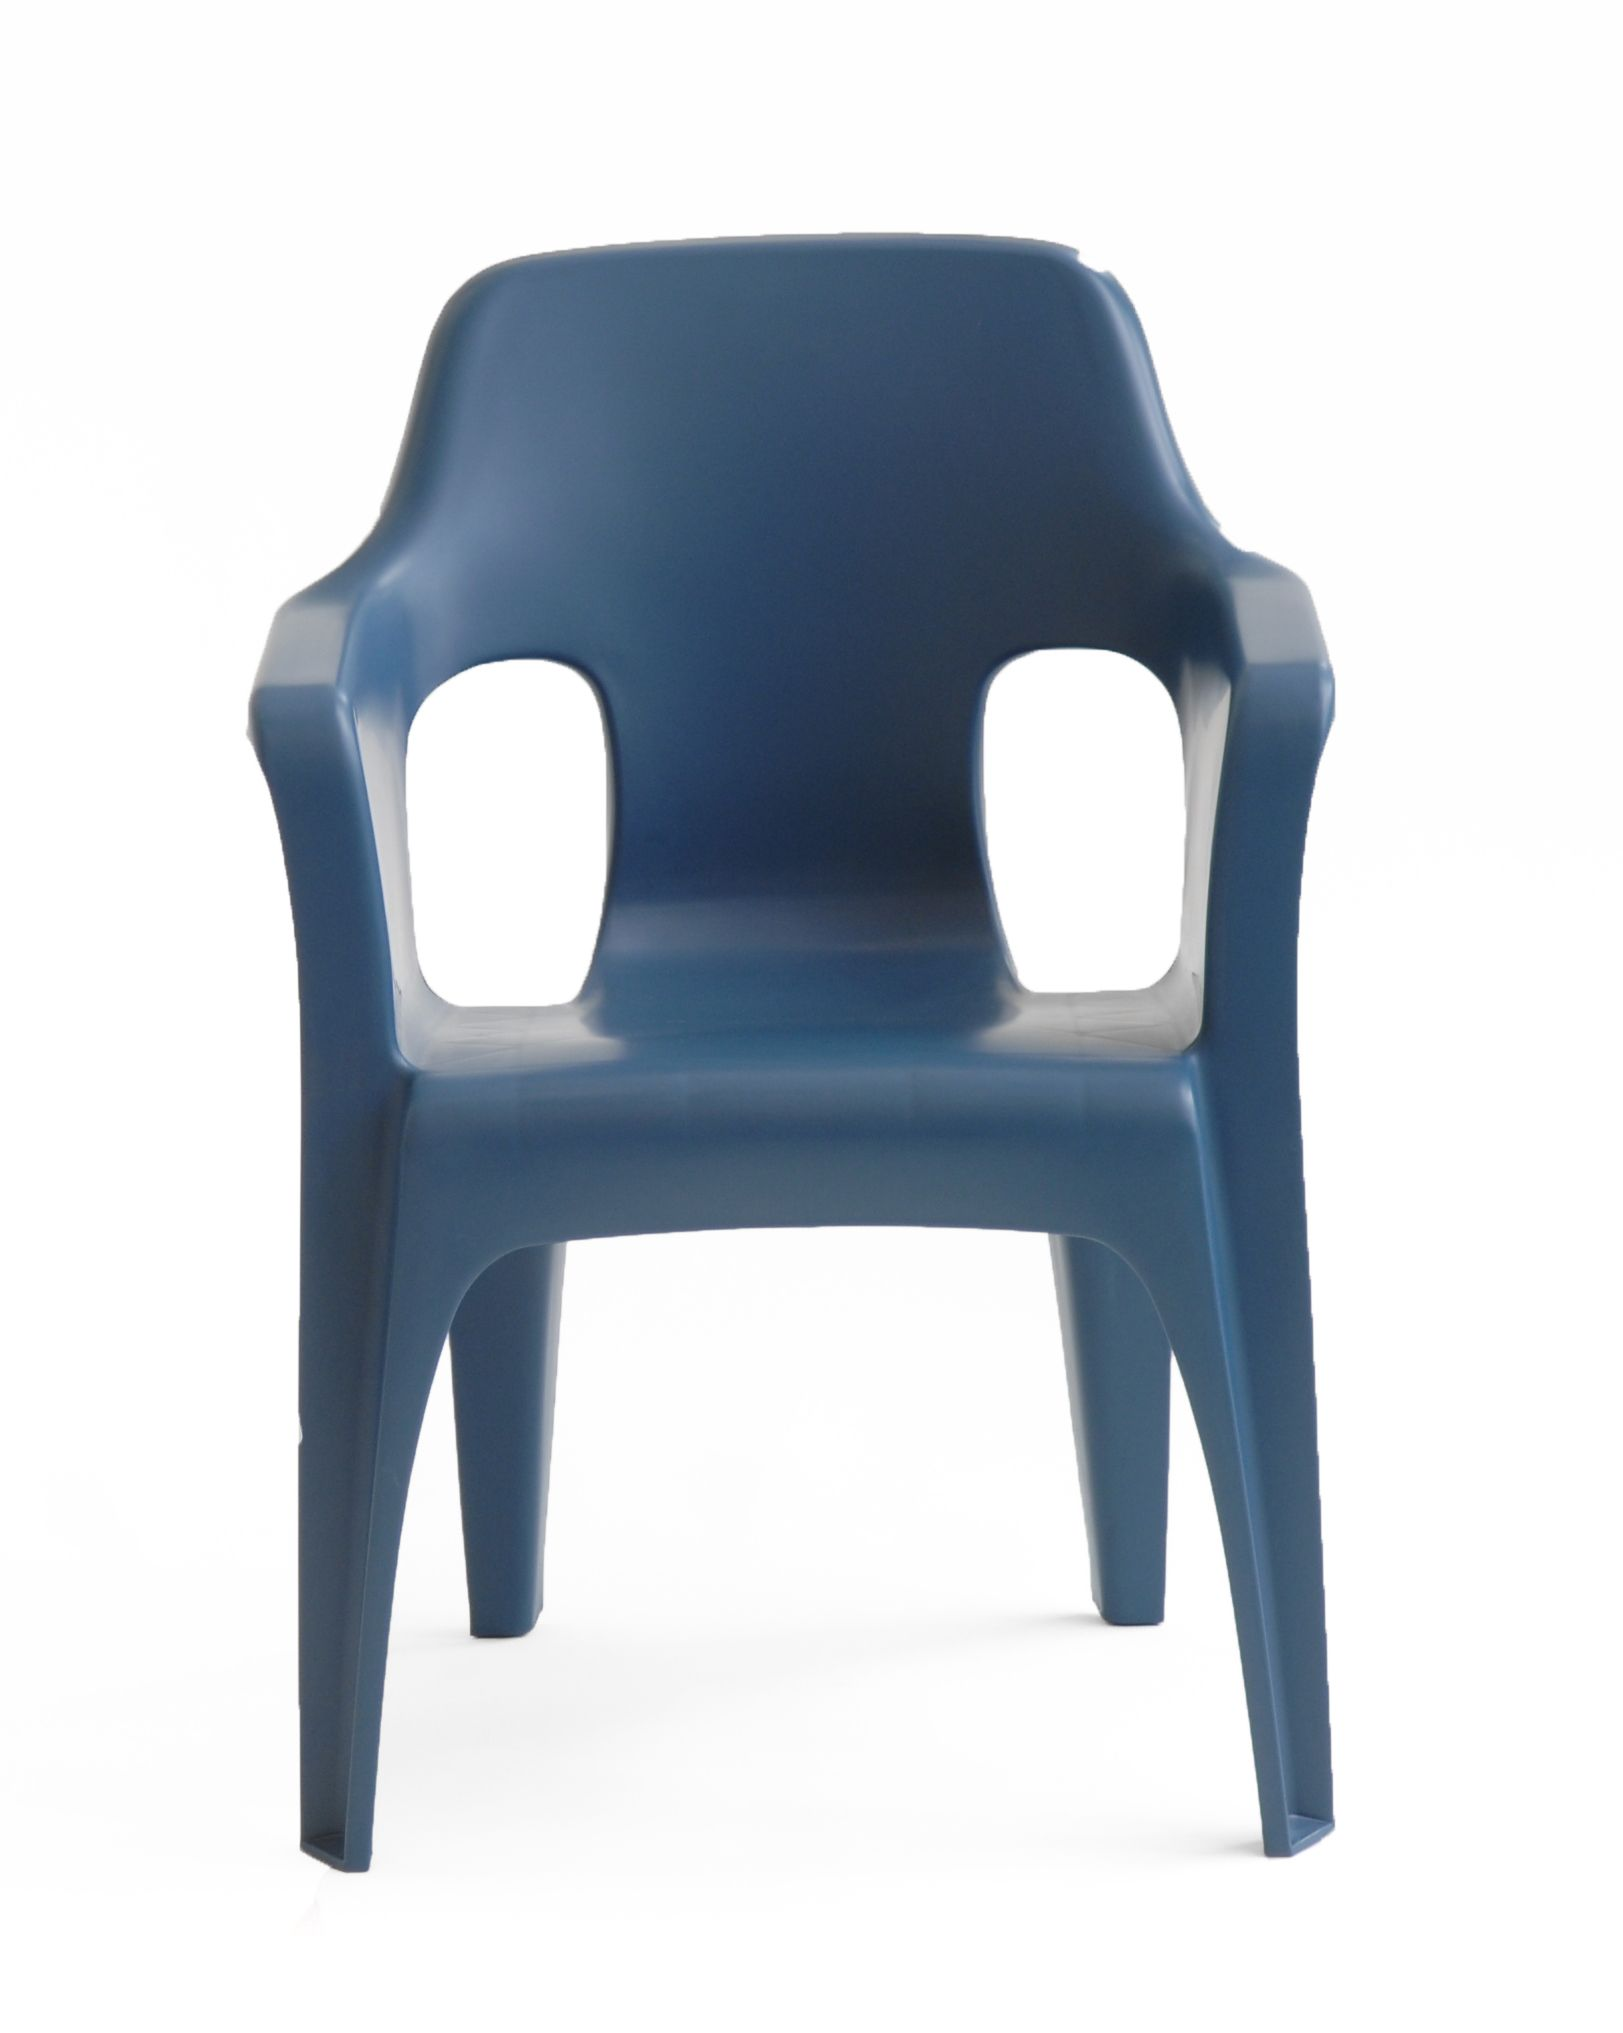 Pin by Moduform Inc on MODUMAXX STACKING CHAIRS Pinterest